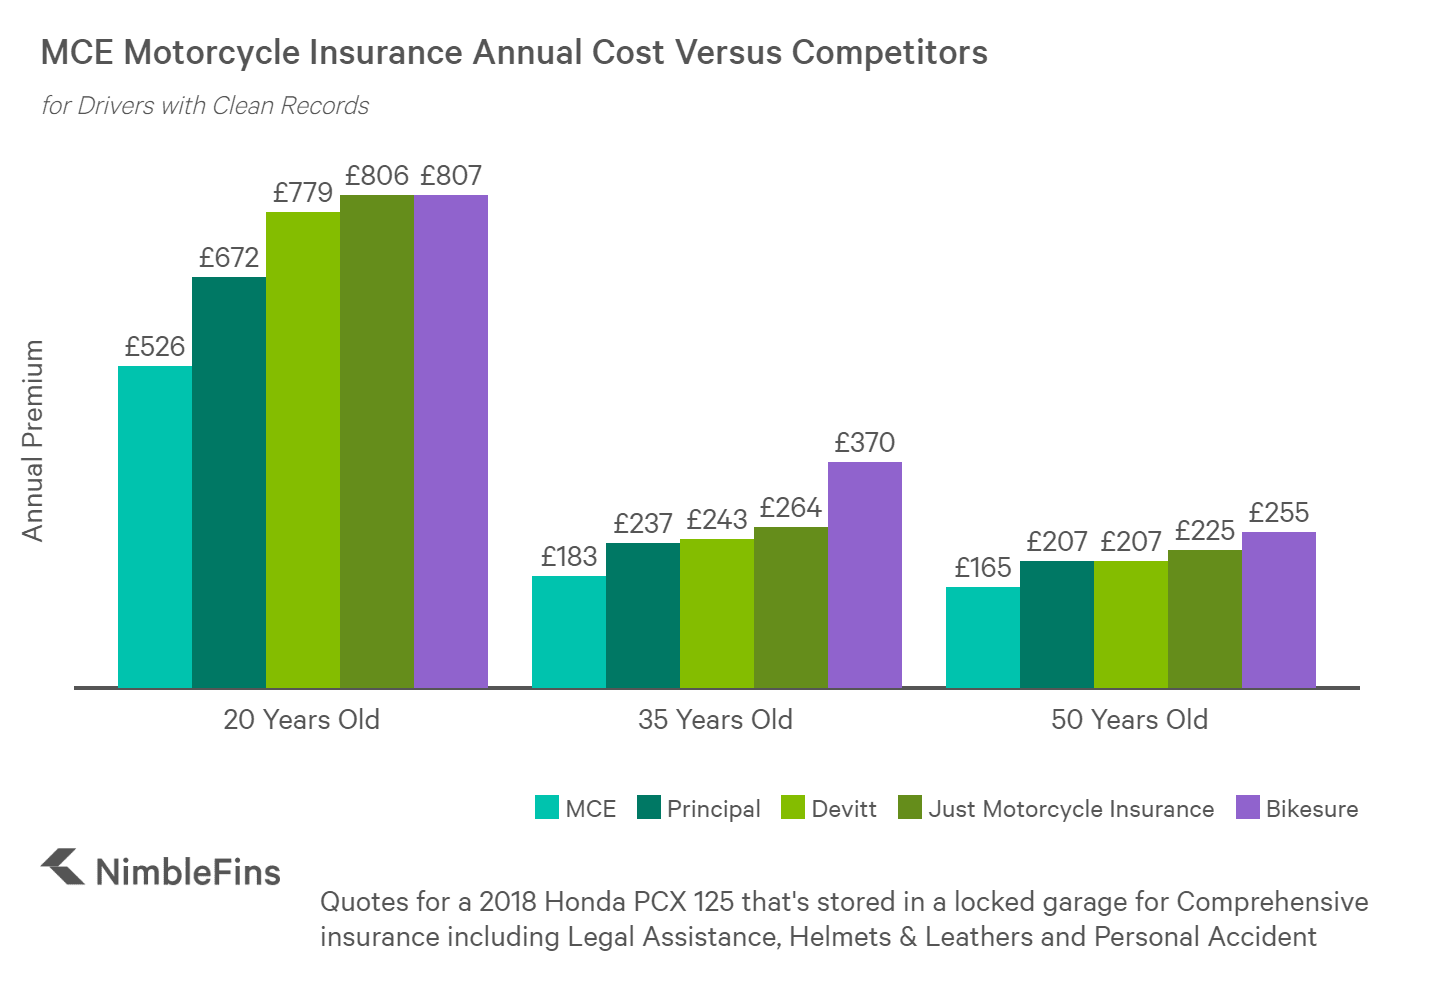 chart showing the motorcycle insurance quotes for a 20 year old, 35 year old and 50 year old from MCE, Principal, Devitt, Just Motorcycle Insurance and Bikesure